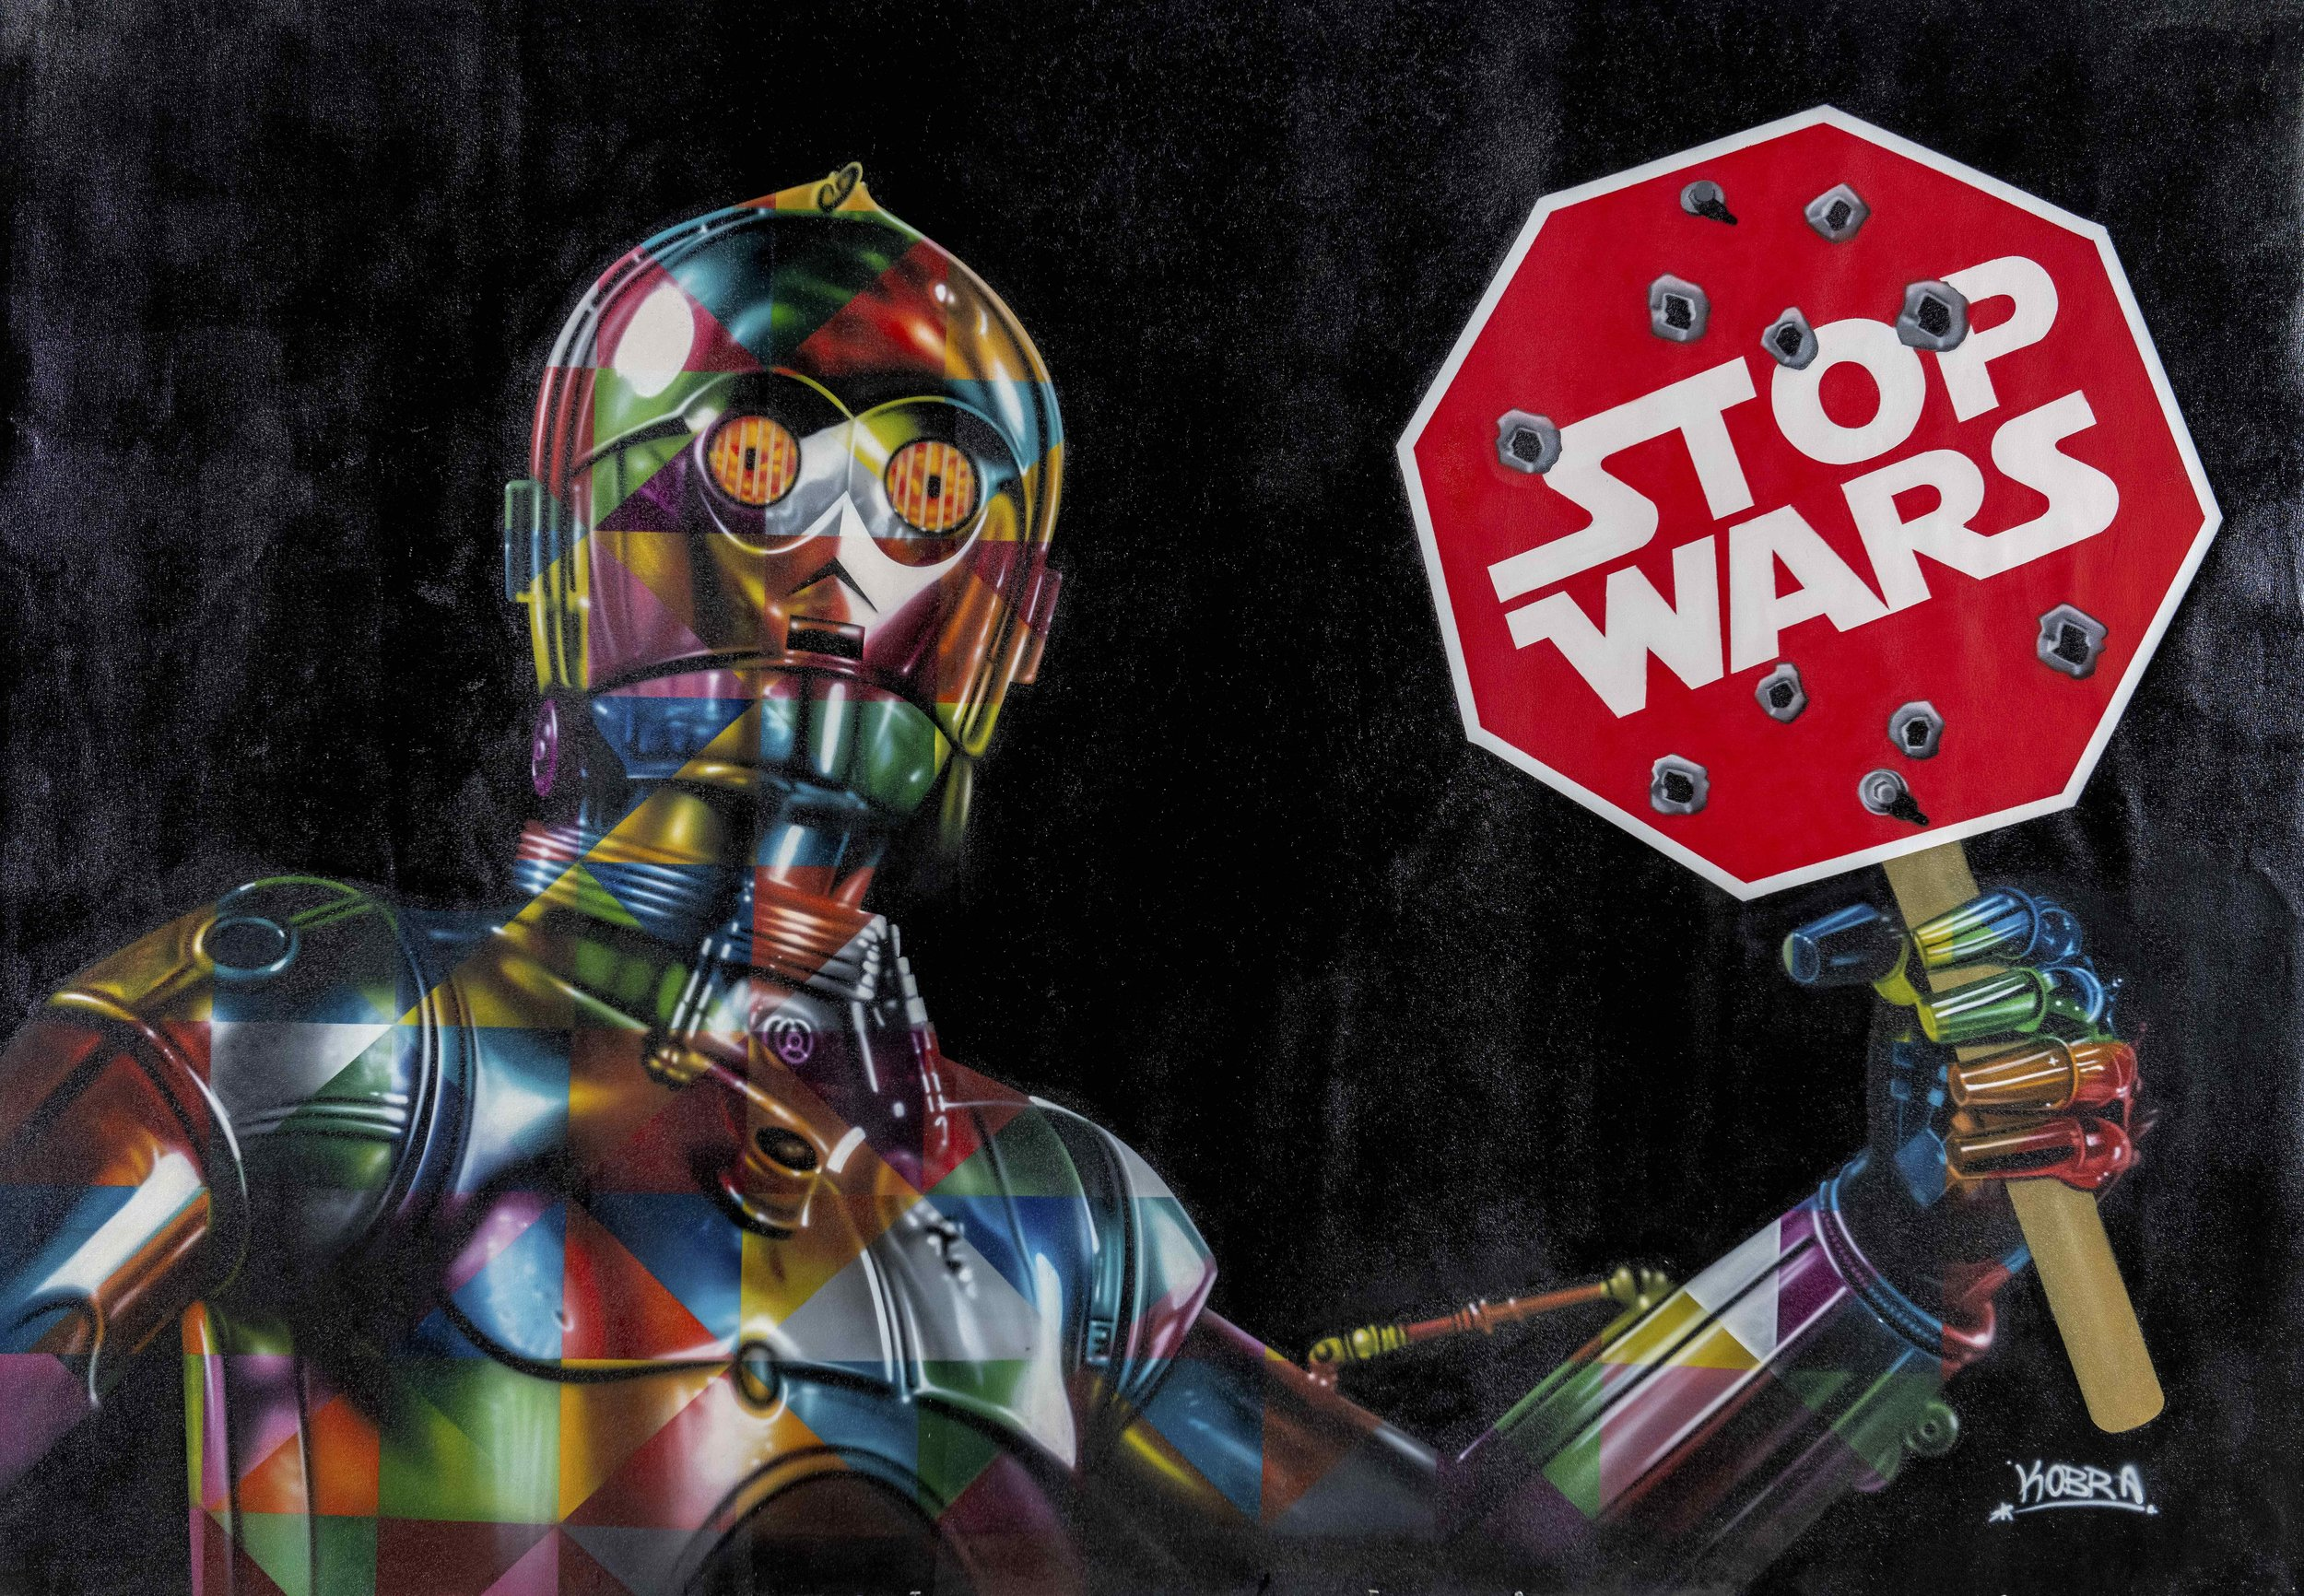 KOBRA  STOP WARS  Mixed media on canvas  104 x 69 inches